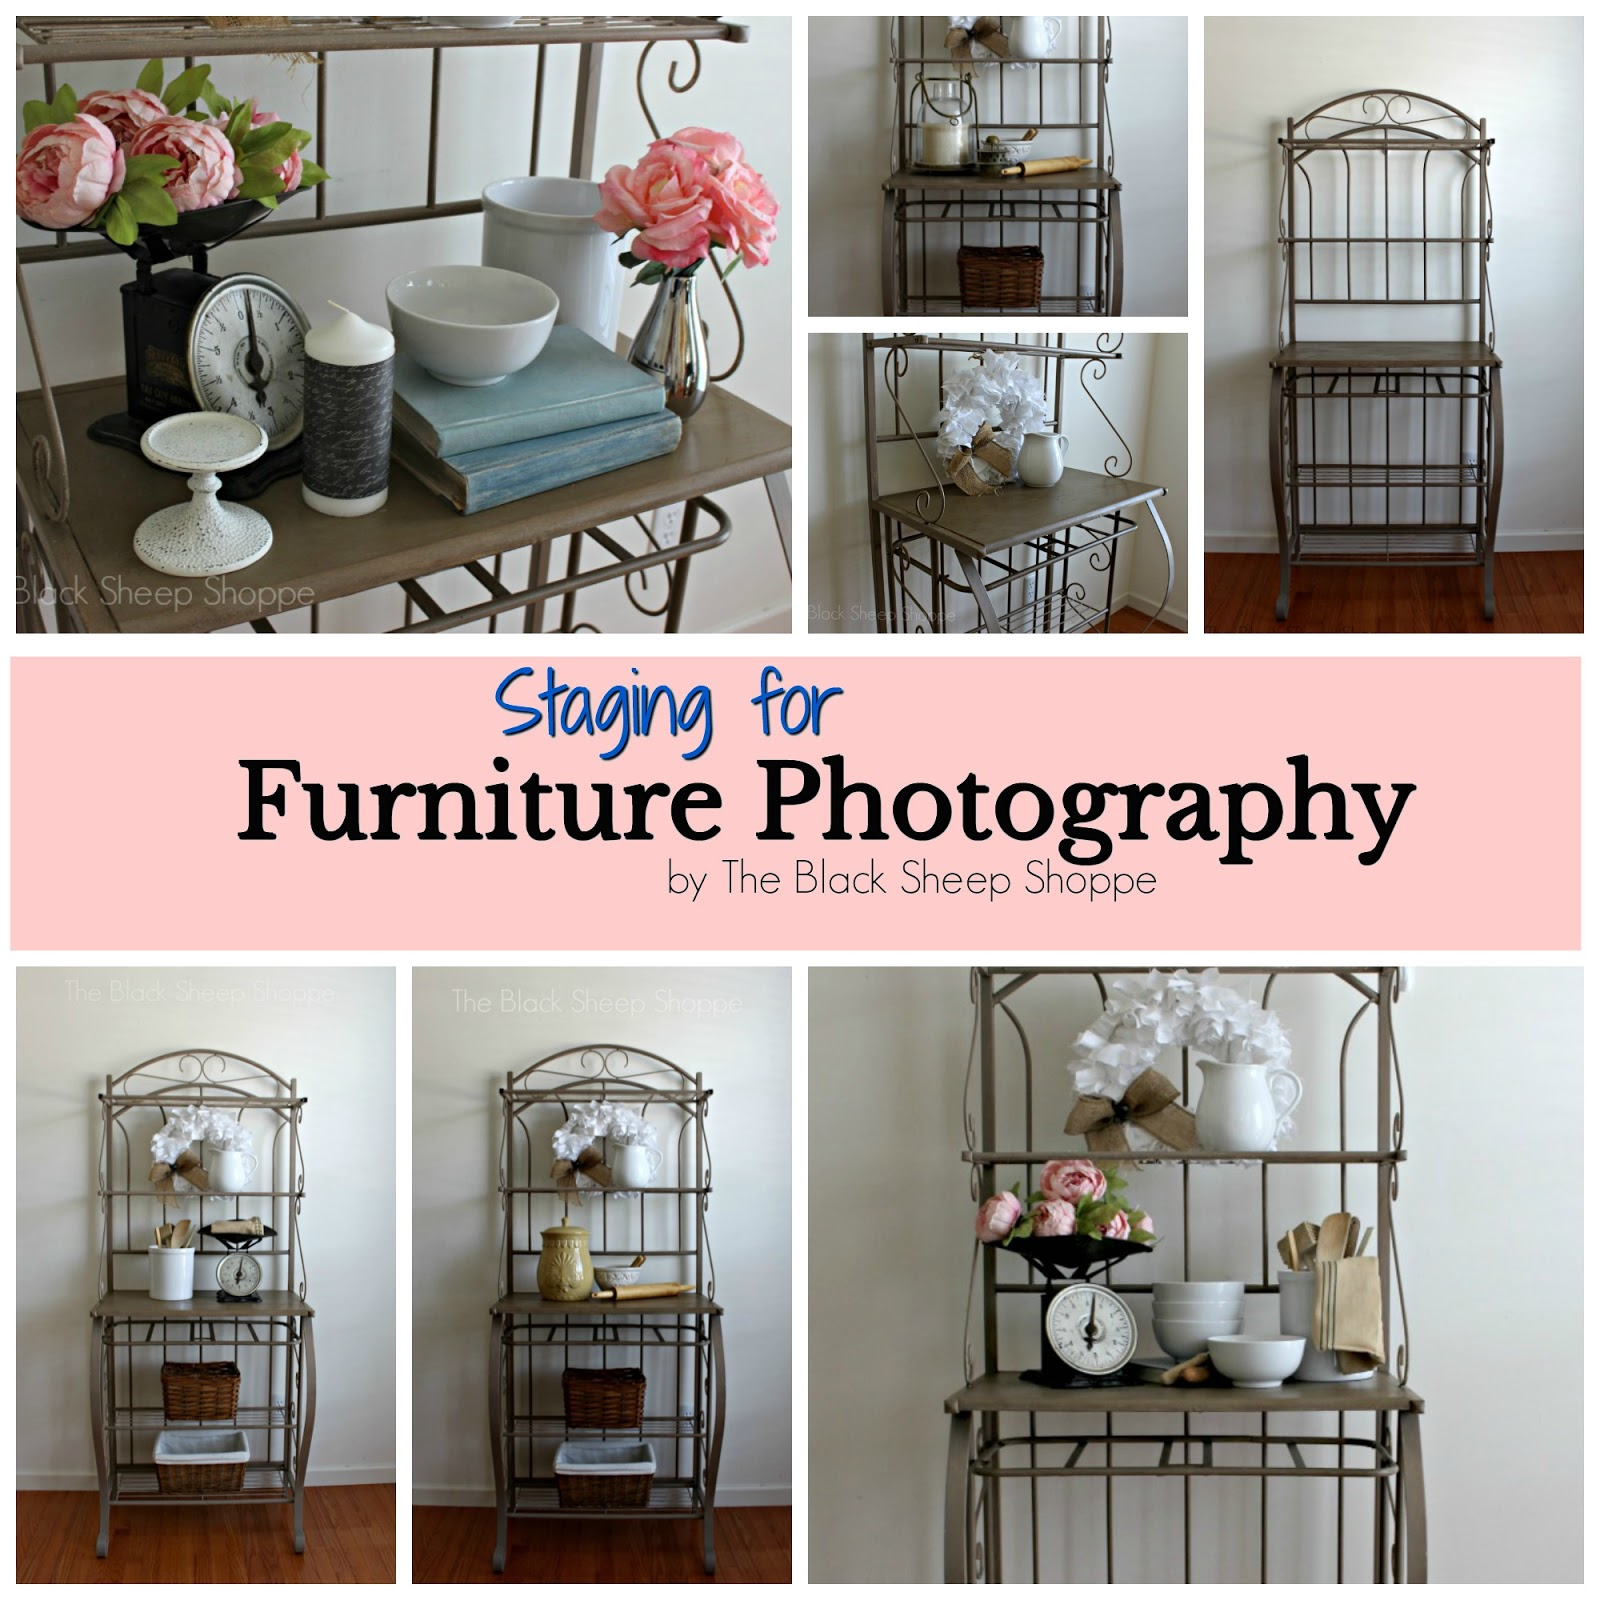 The process of staging furniture for photography.